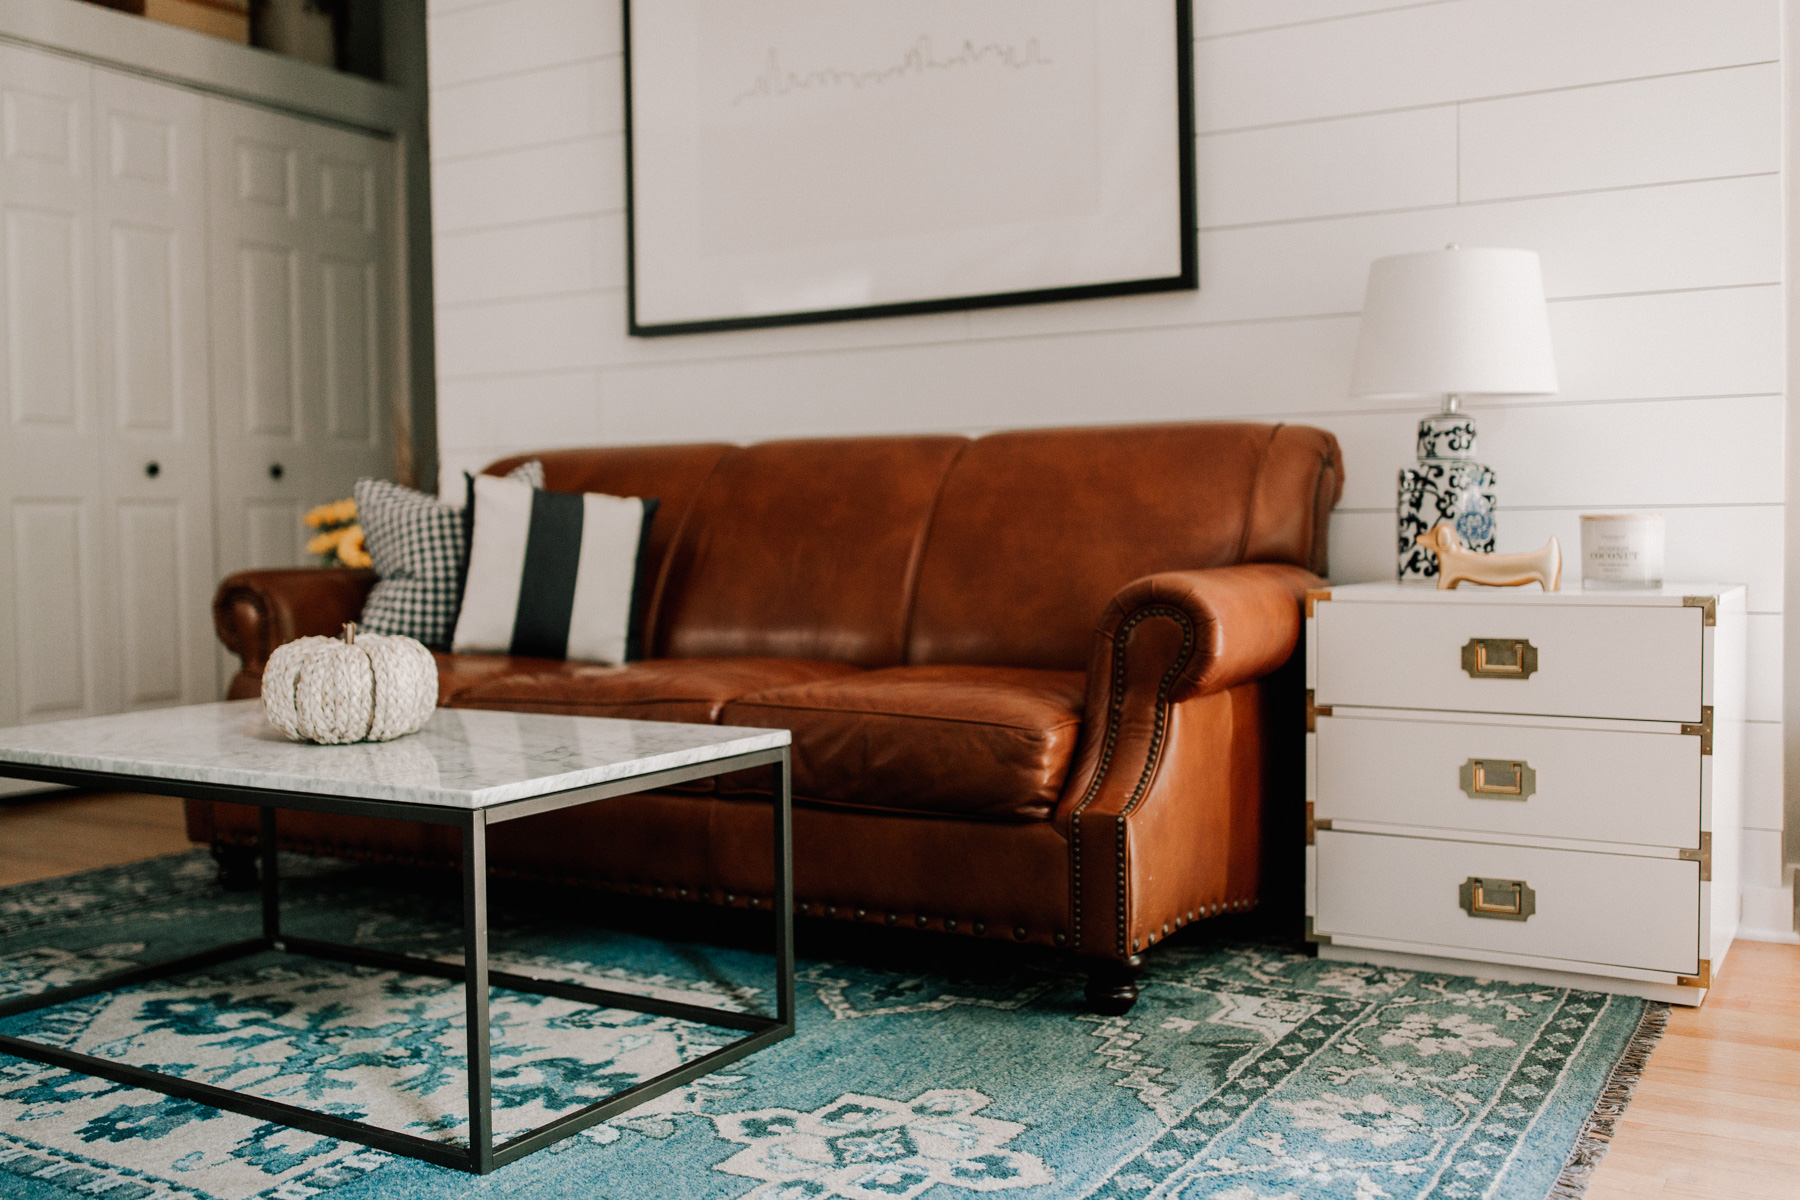 Living Room Decorate for Fall - Marshalls | Kelly in the City